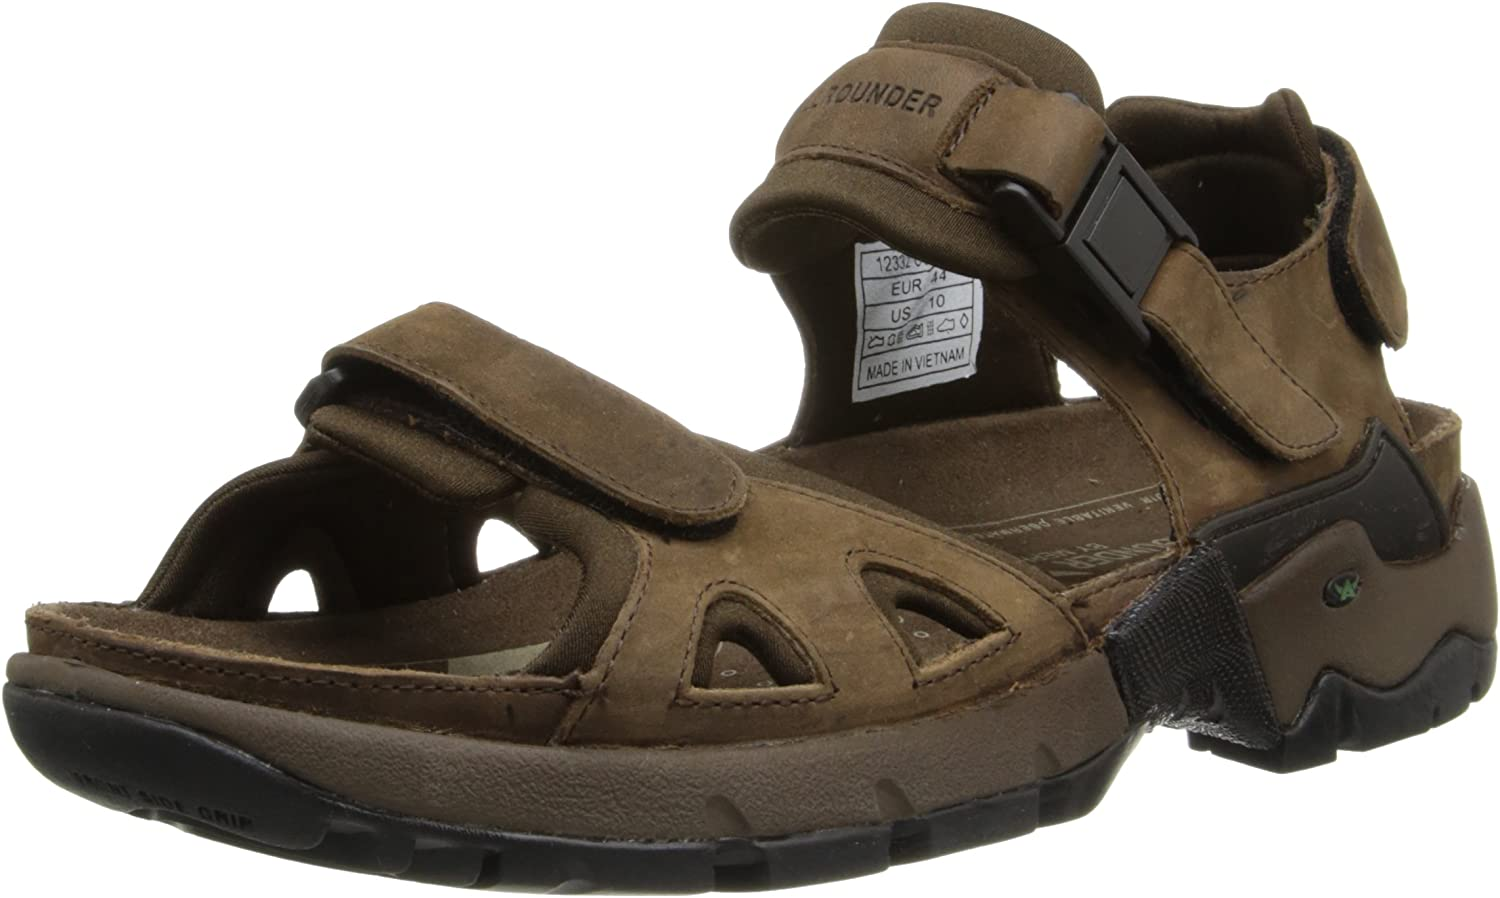 ALLROUNDER by A surprise price is realized MEPHISTO Alligator New arrival Sandal Men's